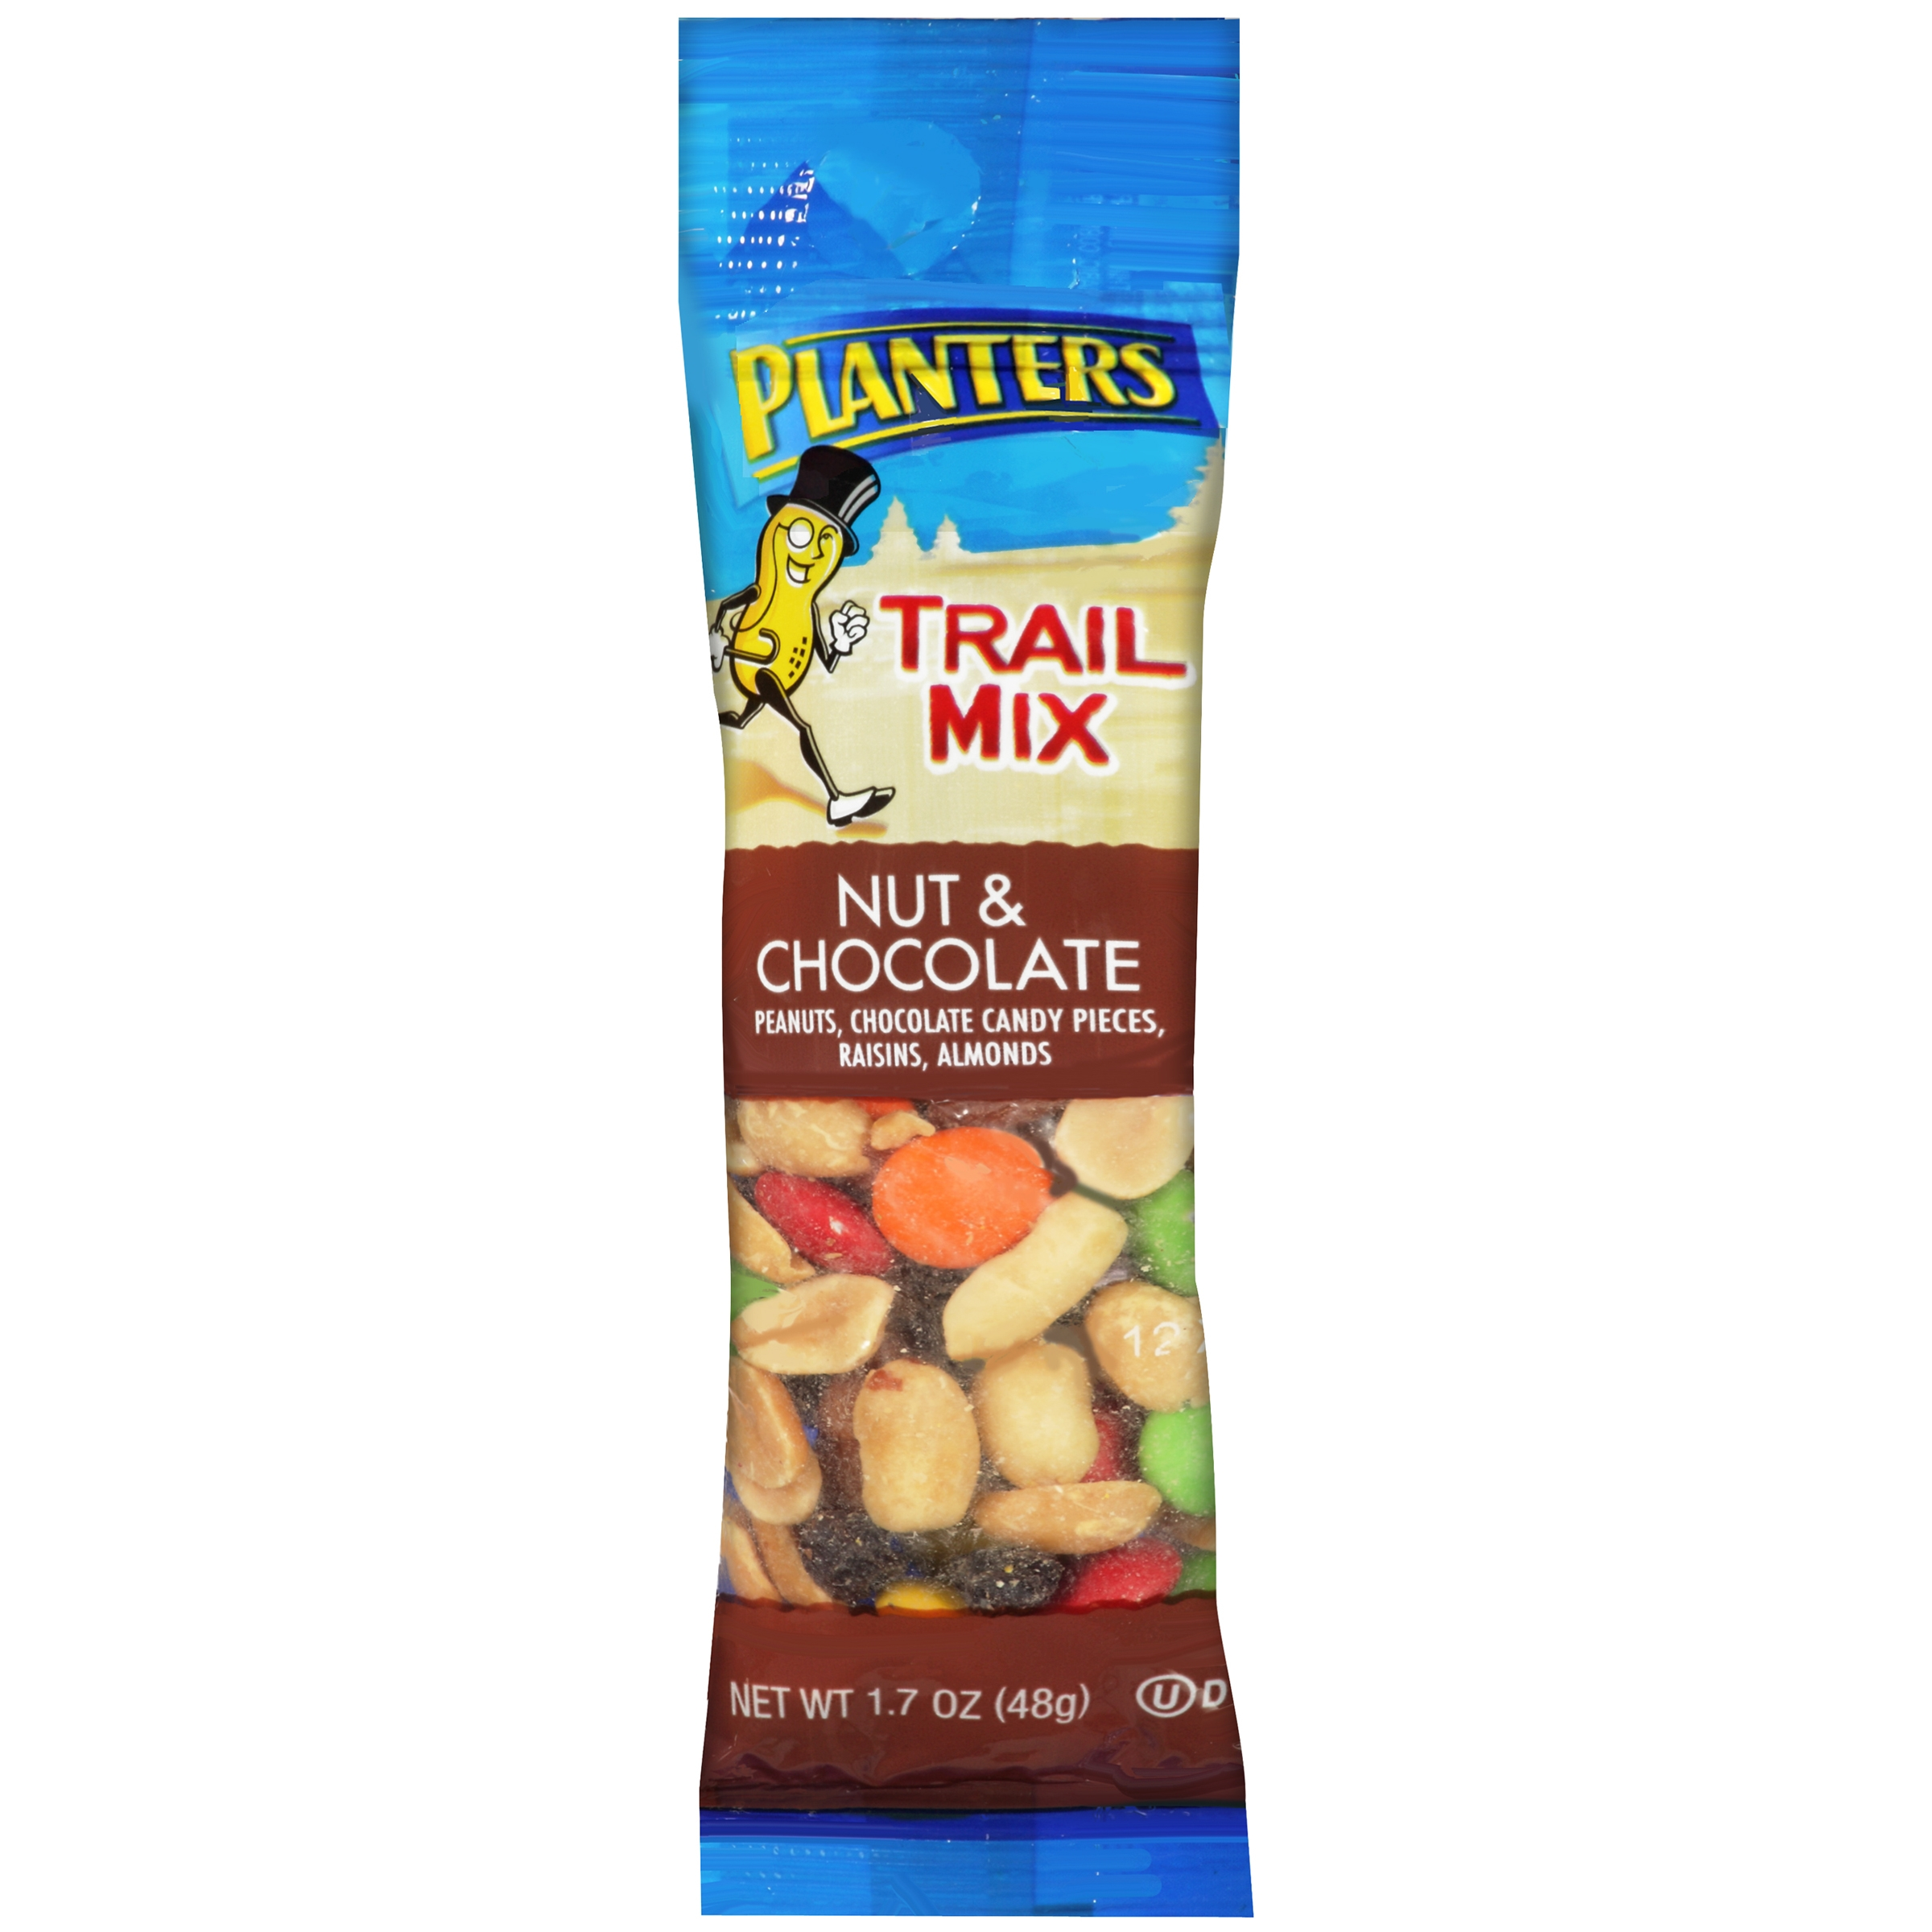 salt planter salted cajun trail spicy mix penguin package pepper nuts sticks roasted product pistachios wonderful planters